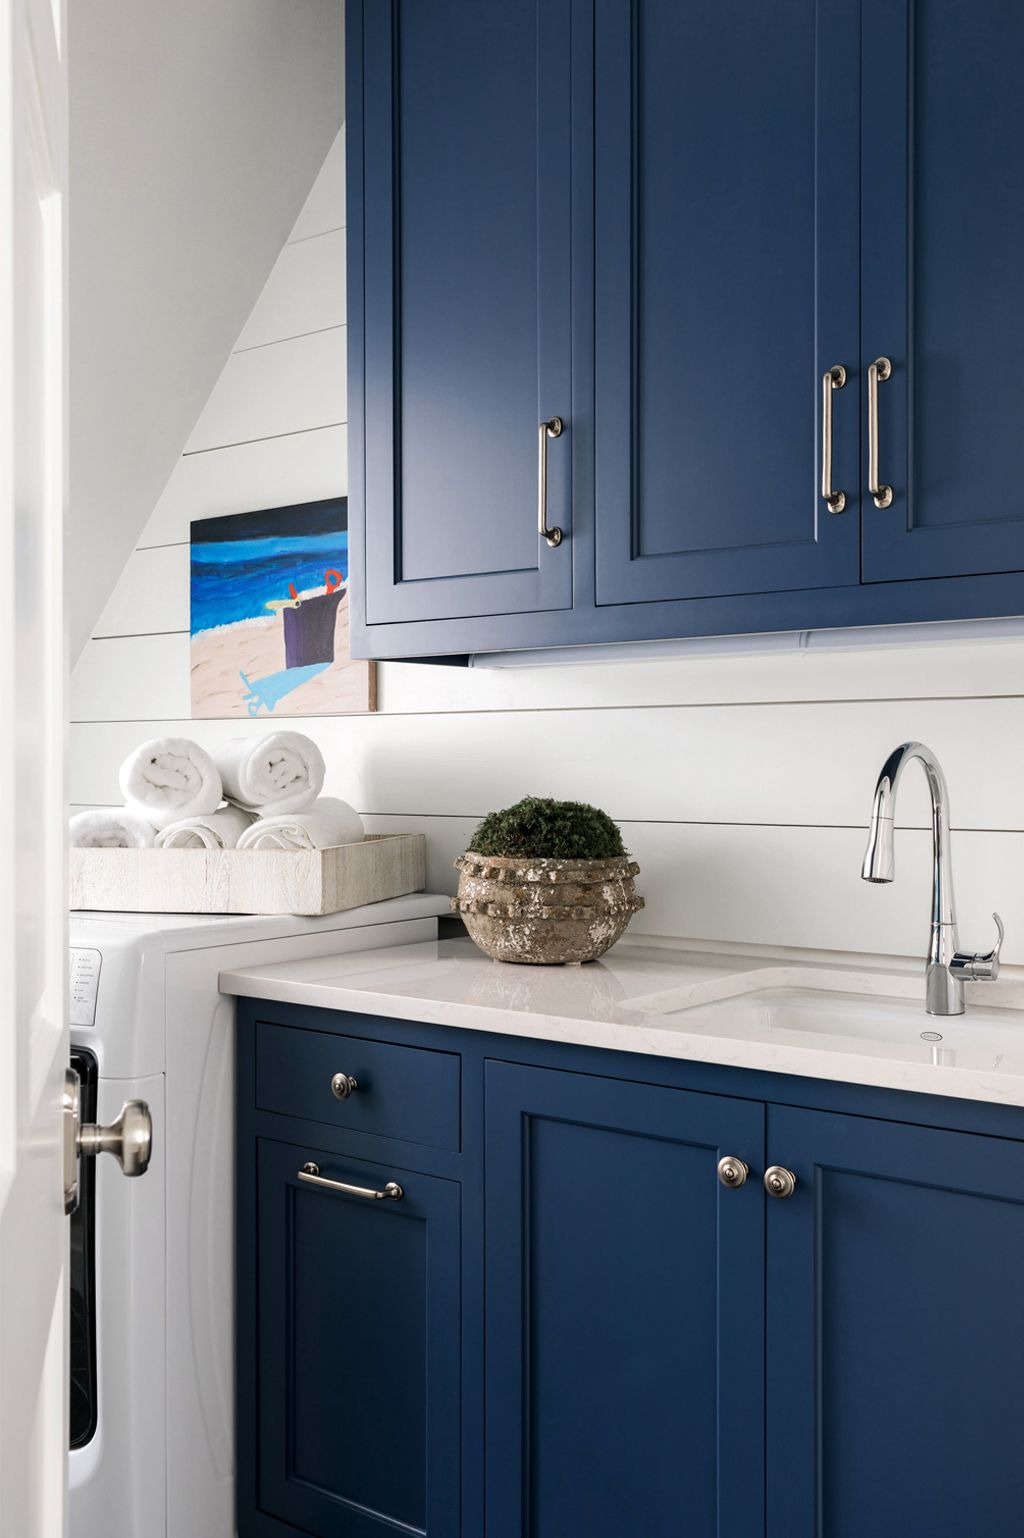 Naval on laundry room cabinets by Sherry Hart Interior Design